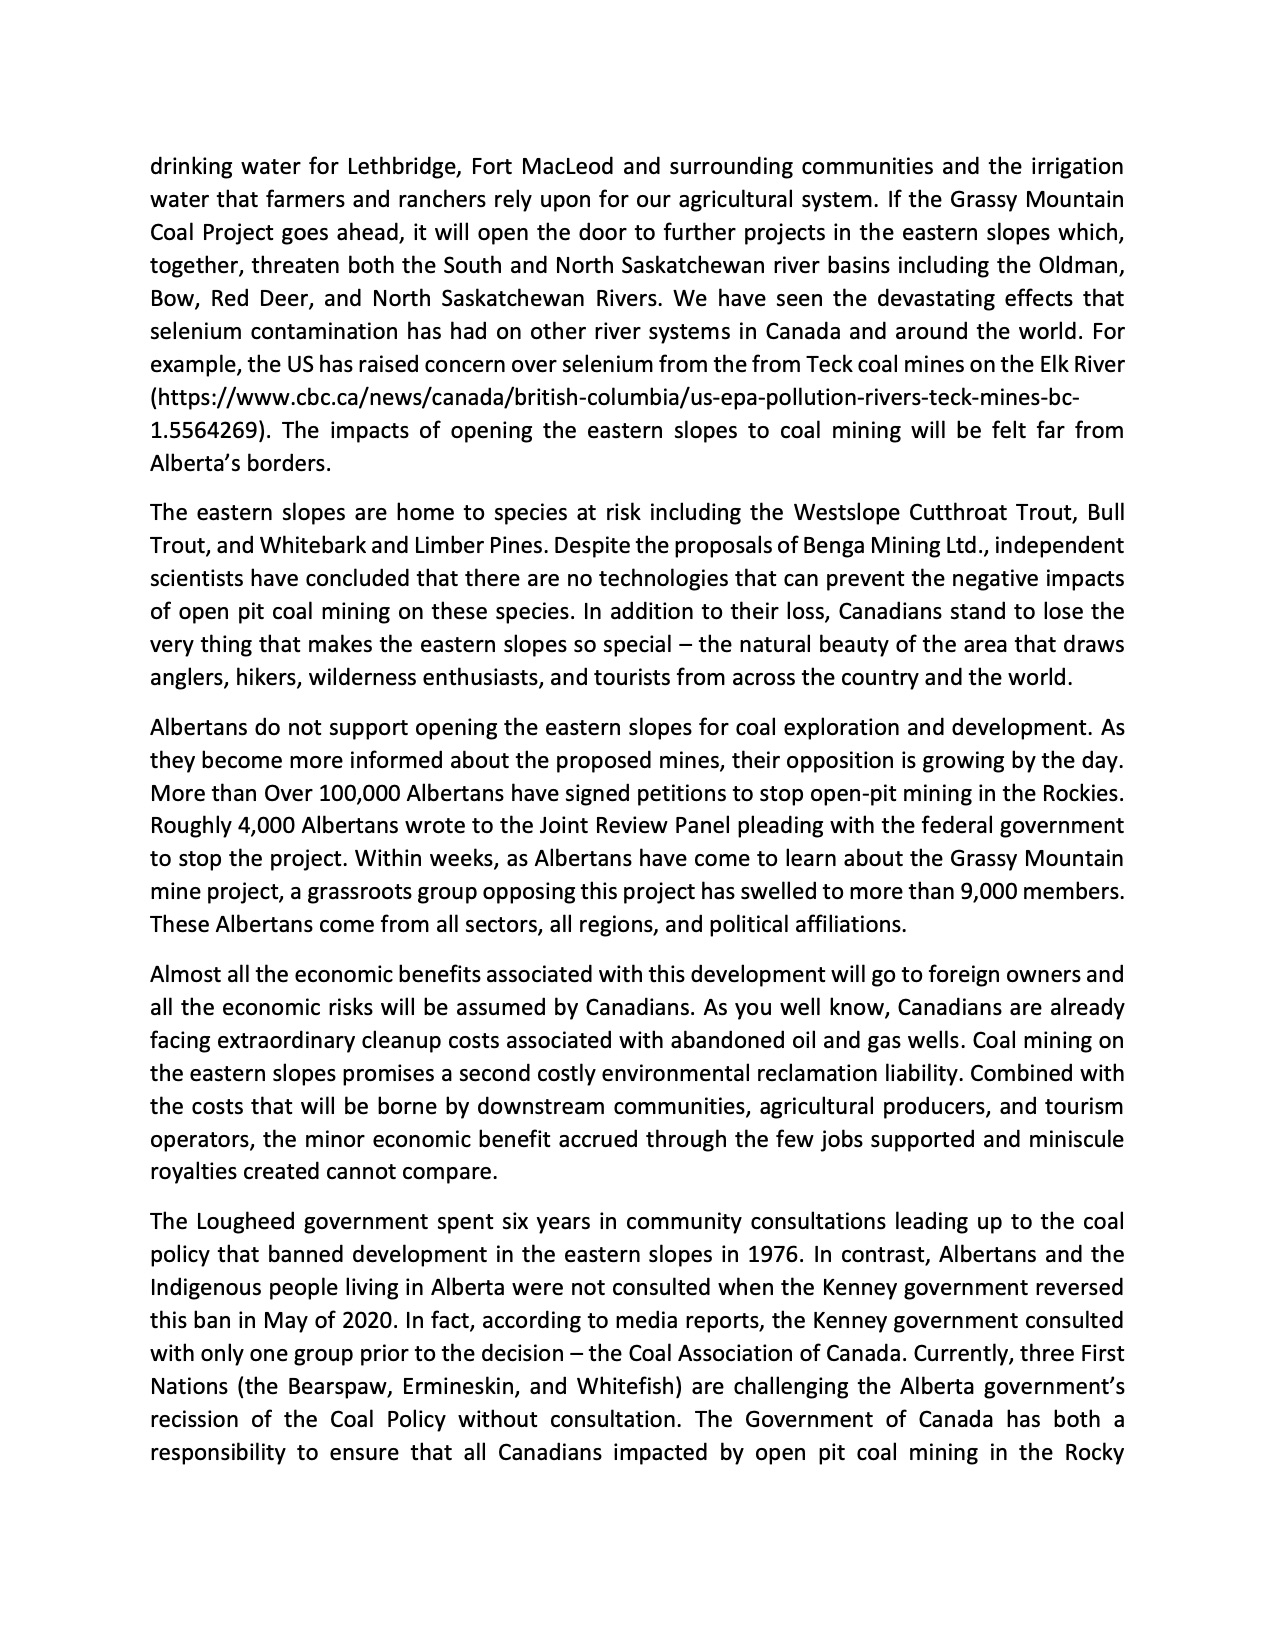 Letter to Minister Wilkinson, Page 2